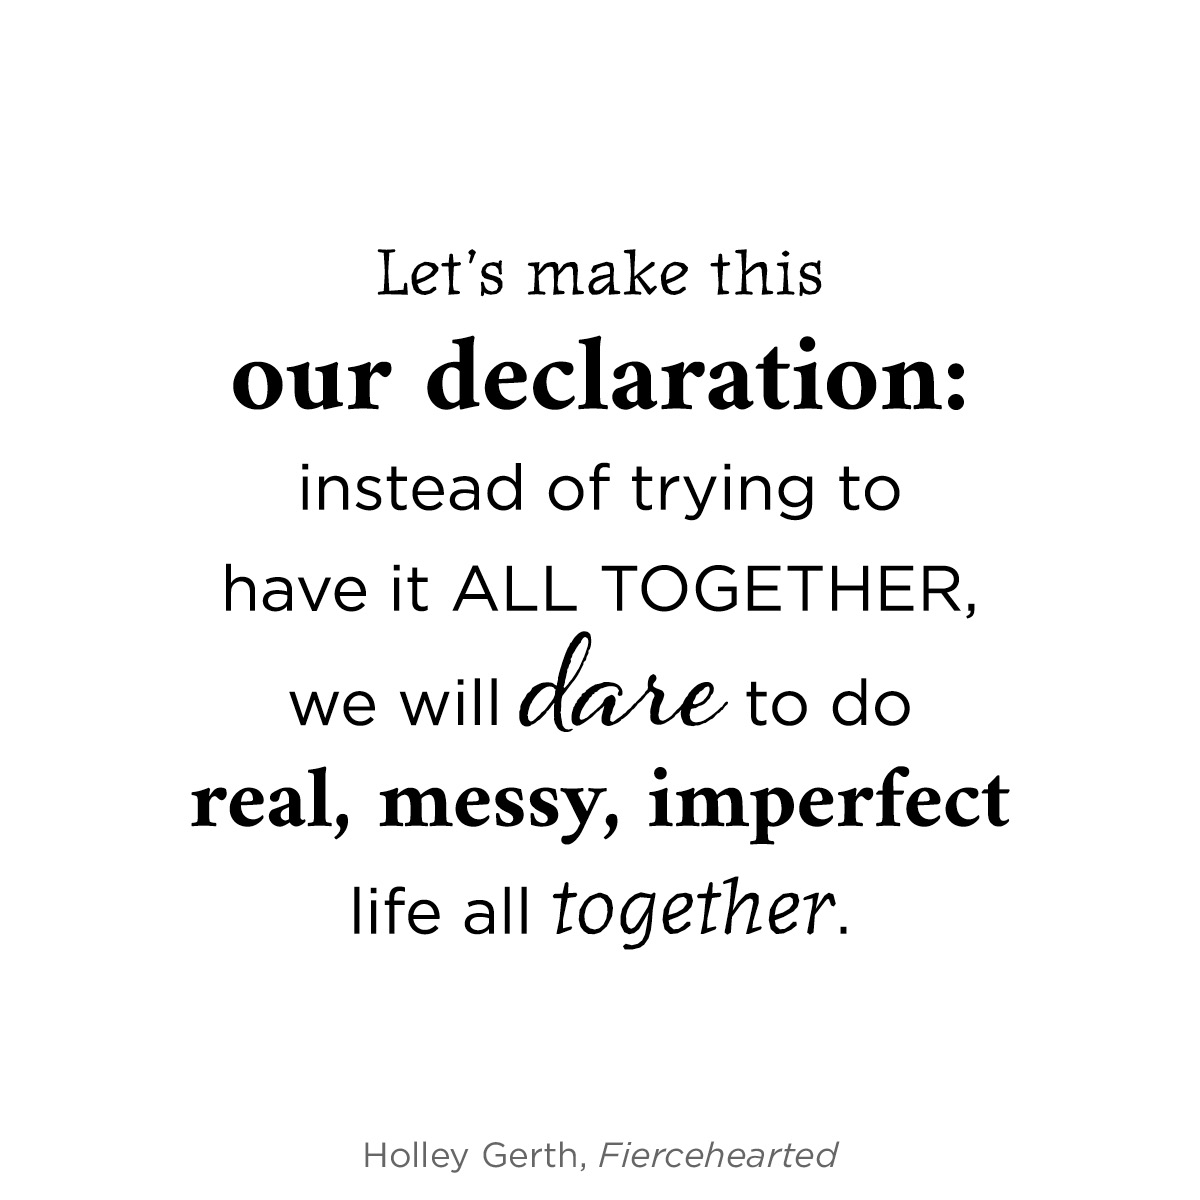 Instead of trying to have it all together, we will dare to do real, messy, imperfect life all together.